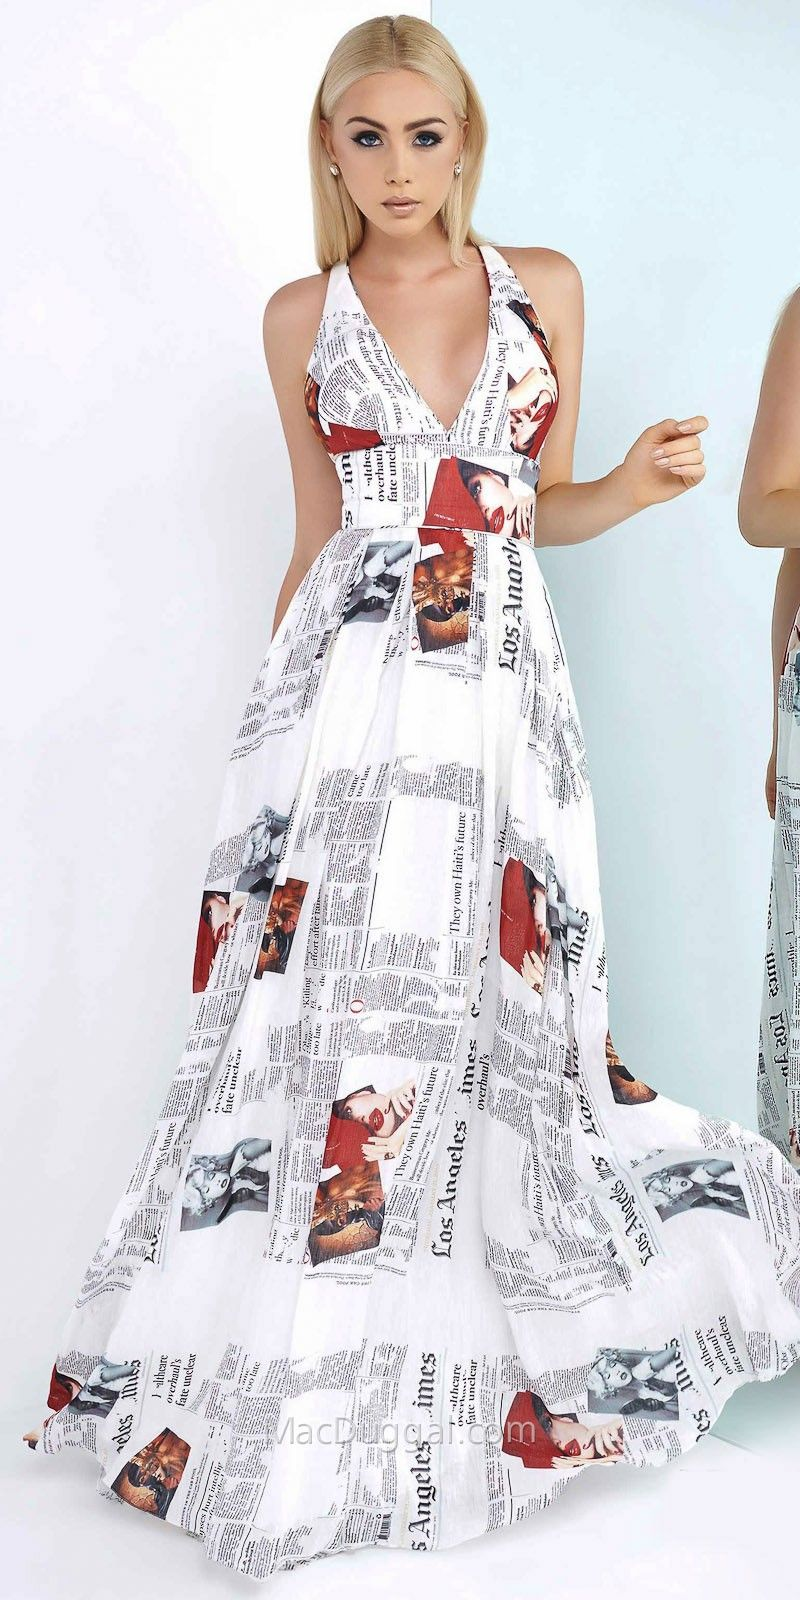 Criss Cross A-Line Pleated News Print Dress by Mac Duggal - Step out ...